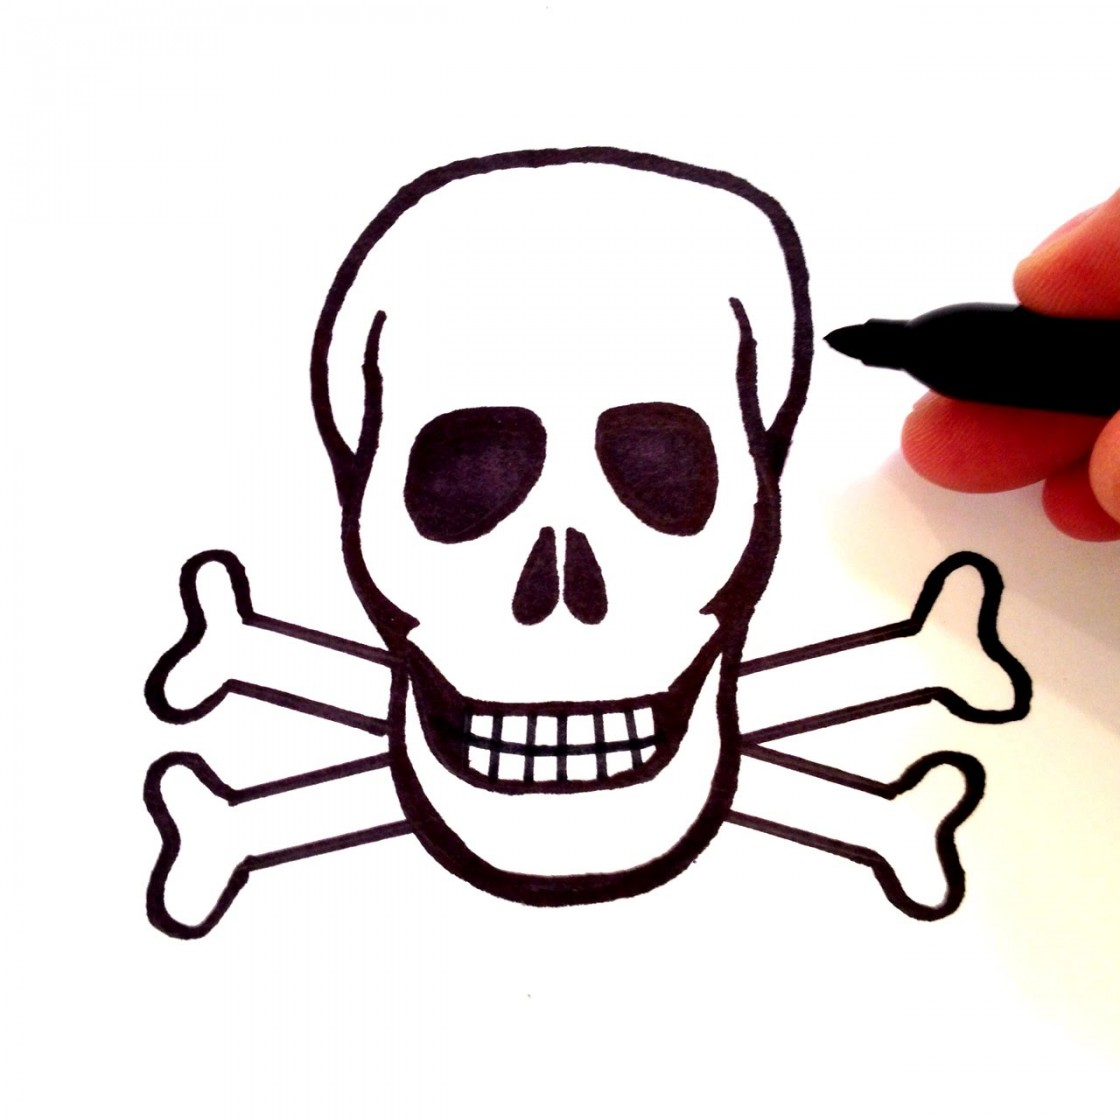 1120x1120 How To Draw A Skull